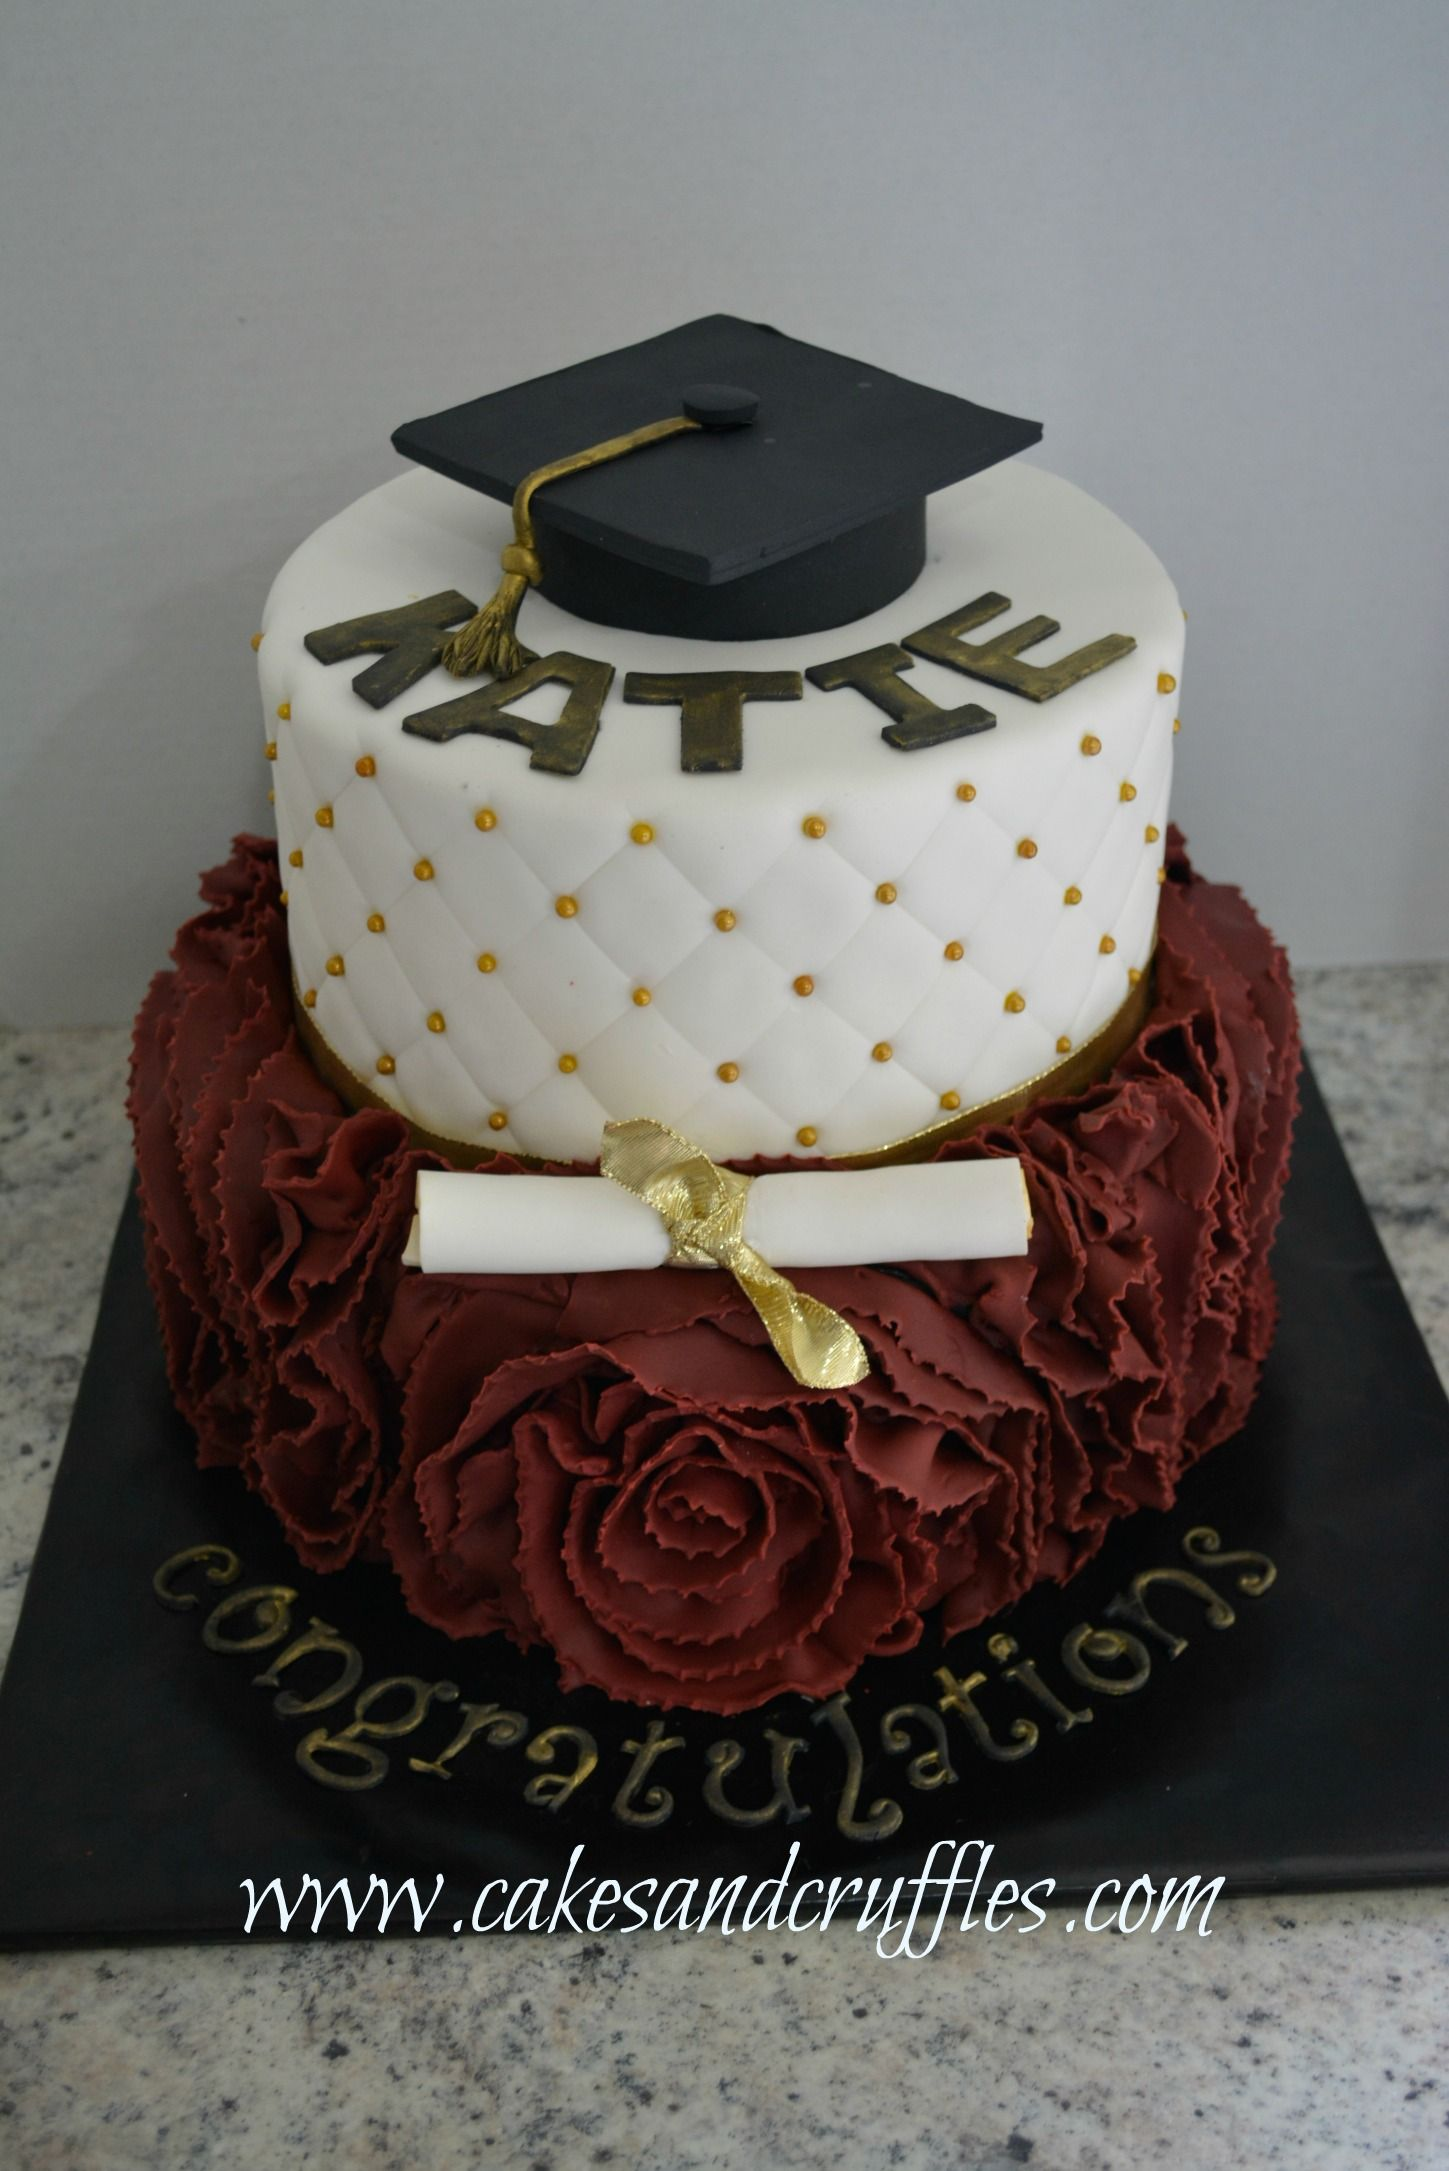 All fondant graduation cake. Top cake was fondant diamond ...